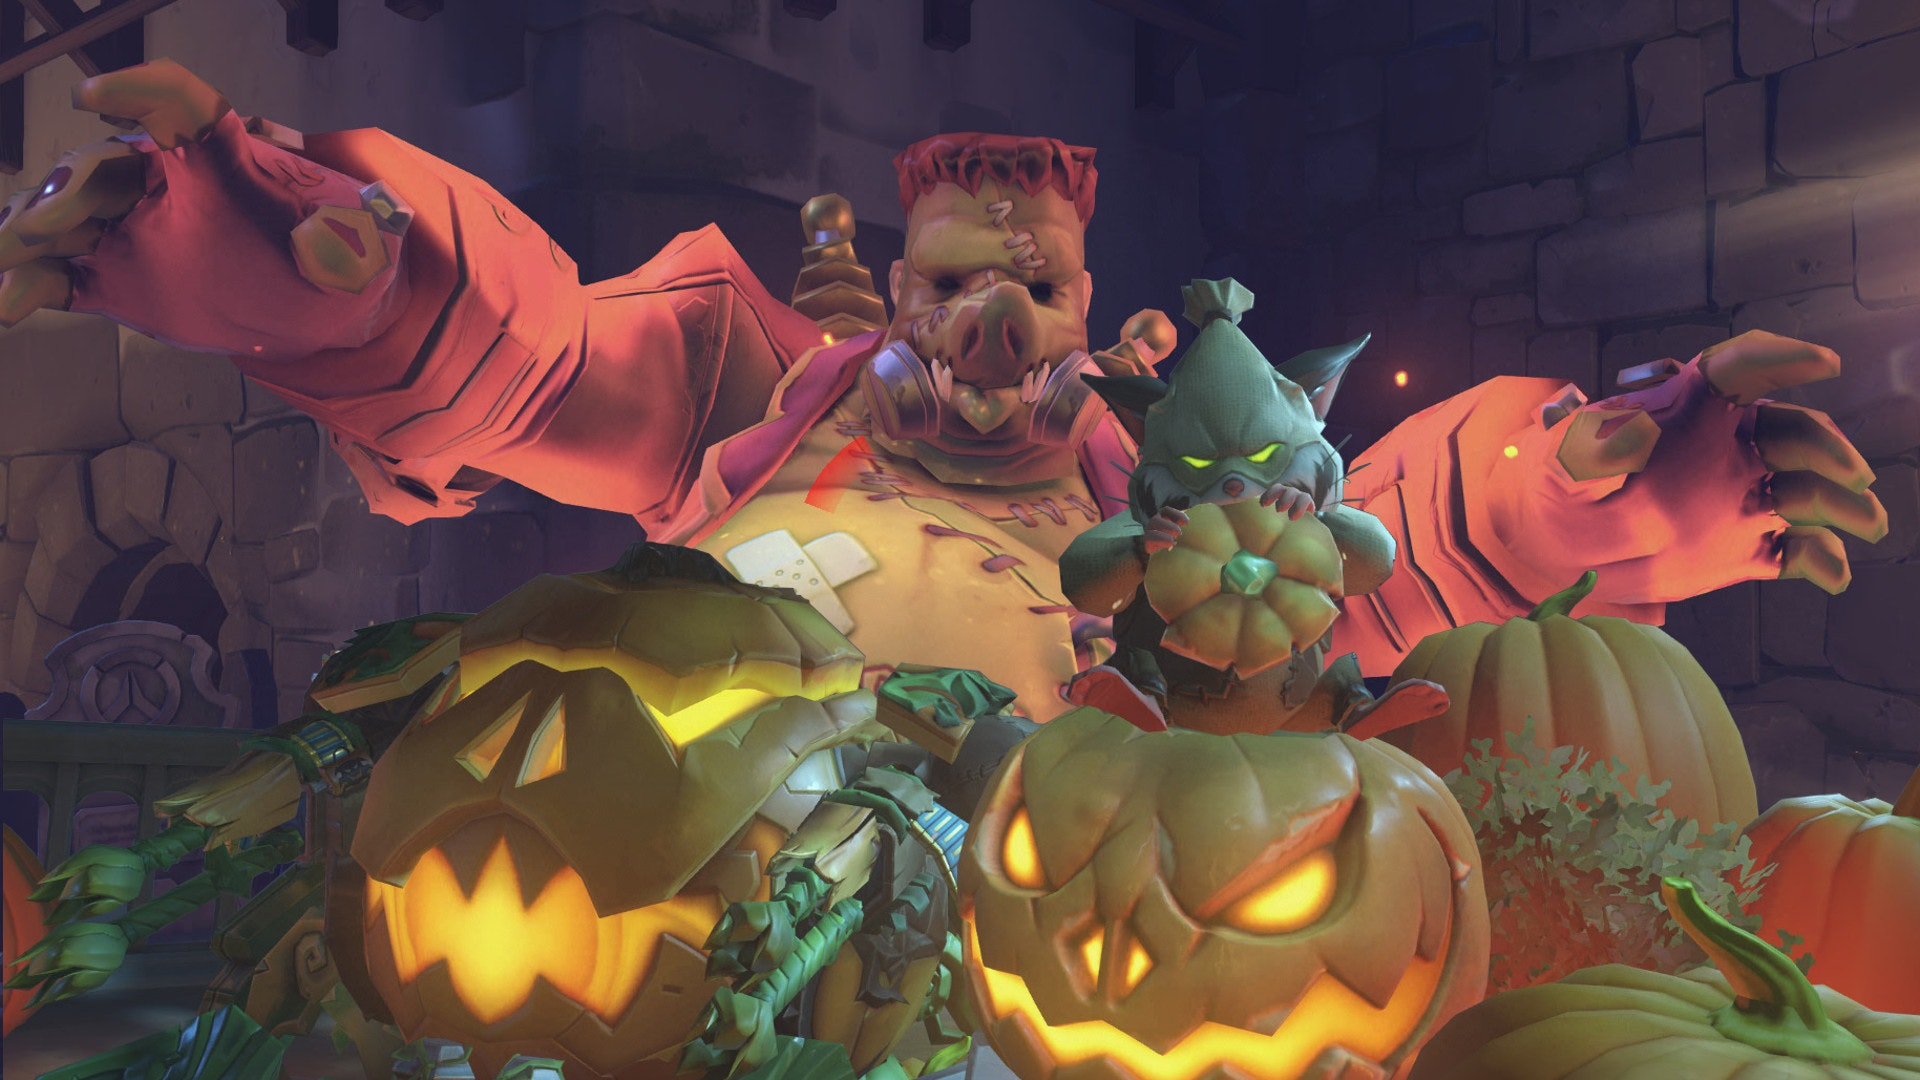 New Sprays Overwatch Halloween 2020 Overwatch' Halloween 2019 skins, event, release date, start time